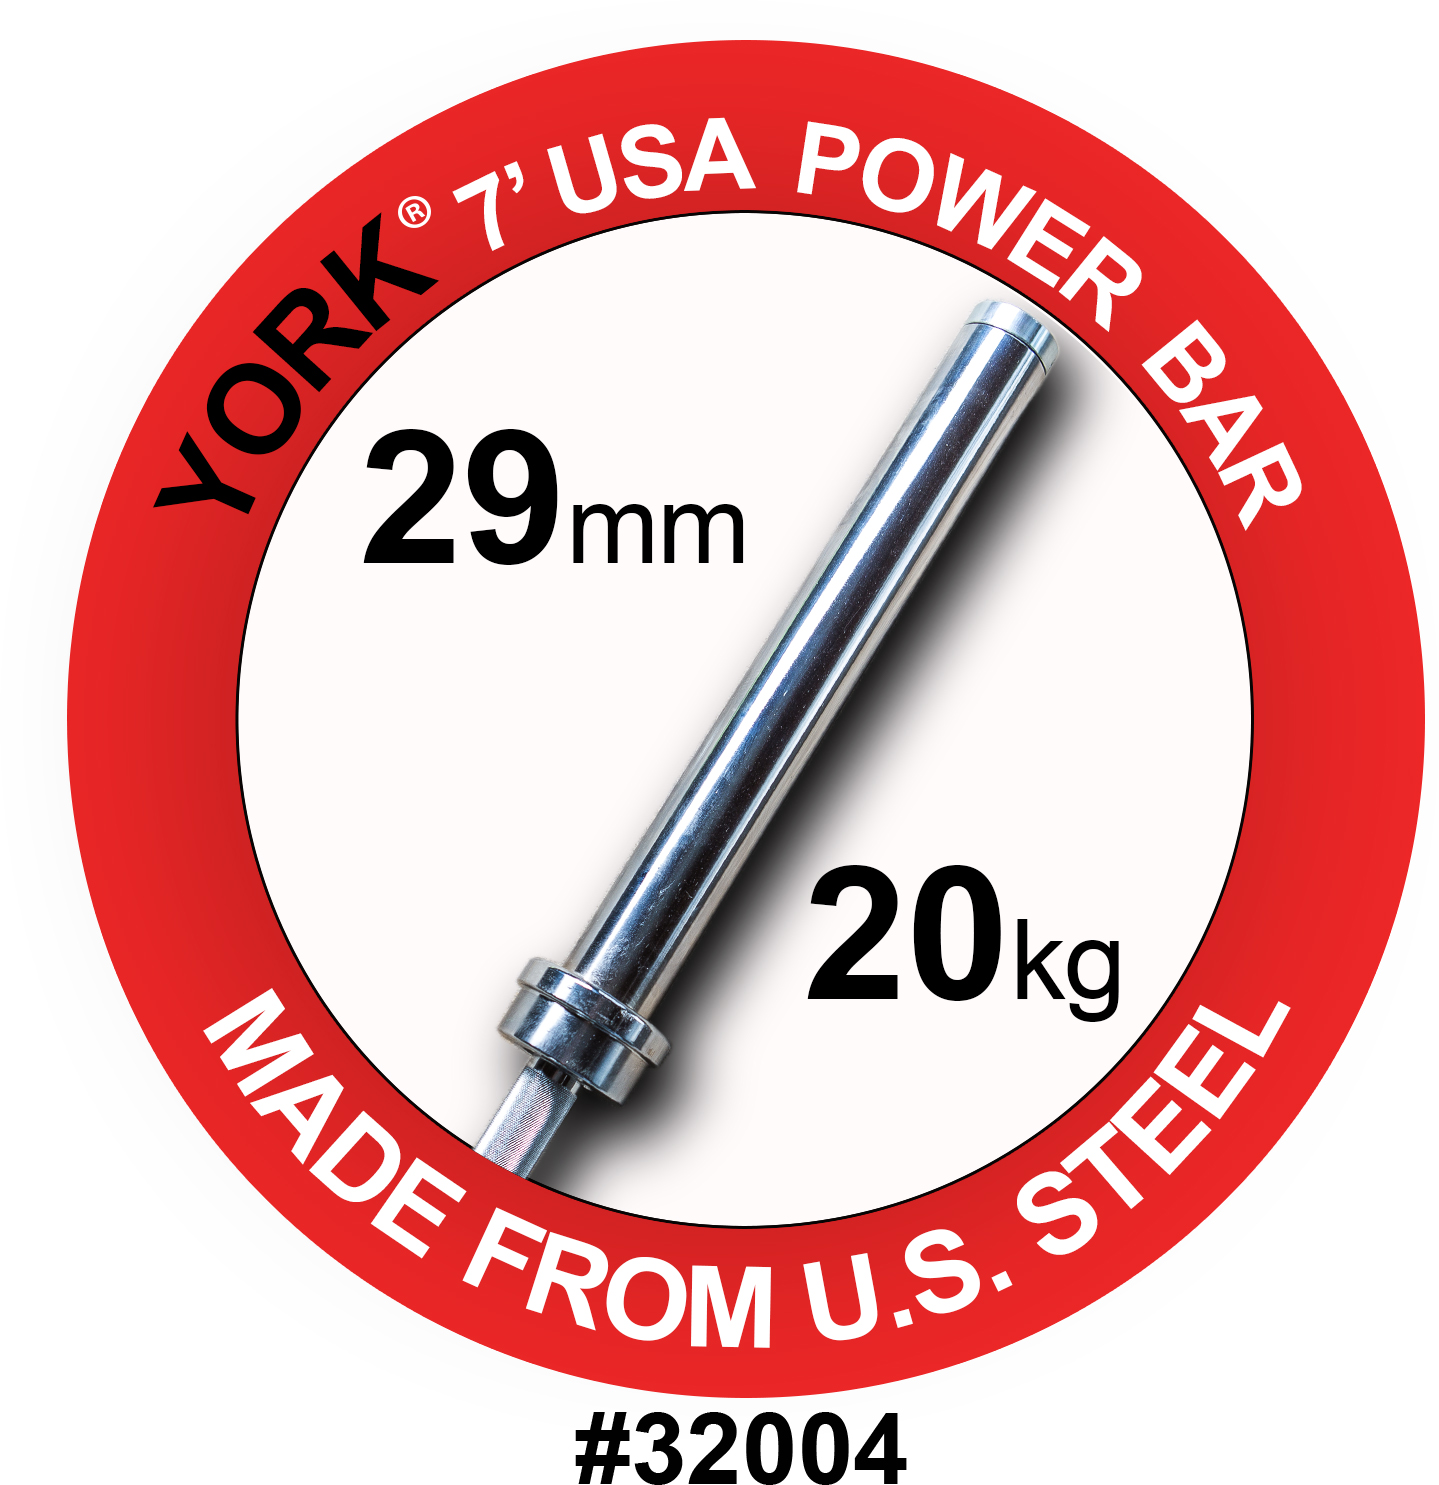 7' USA Power Weight Bar